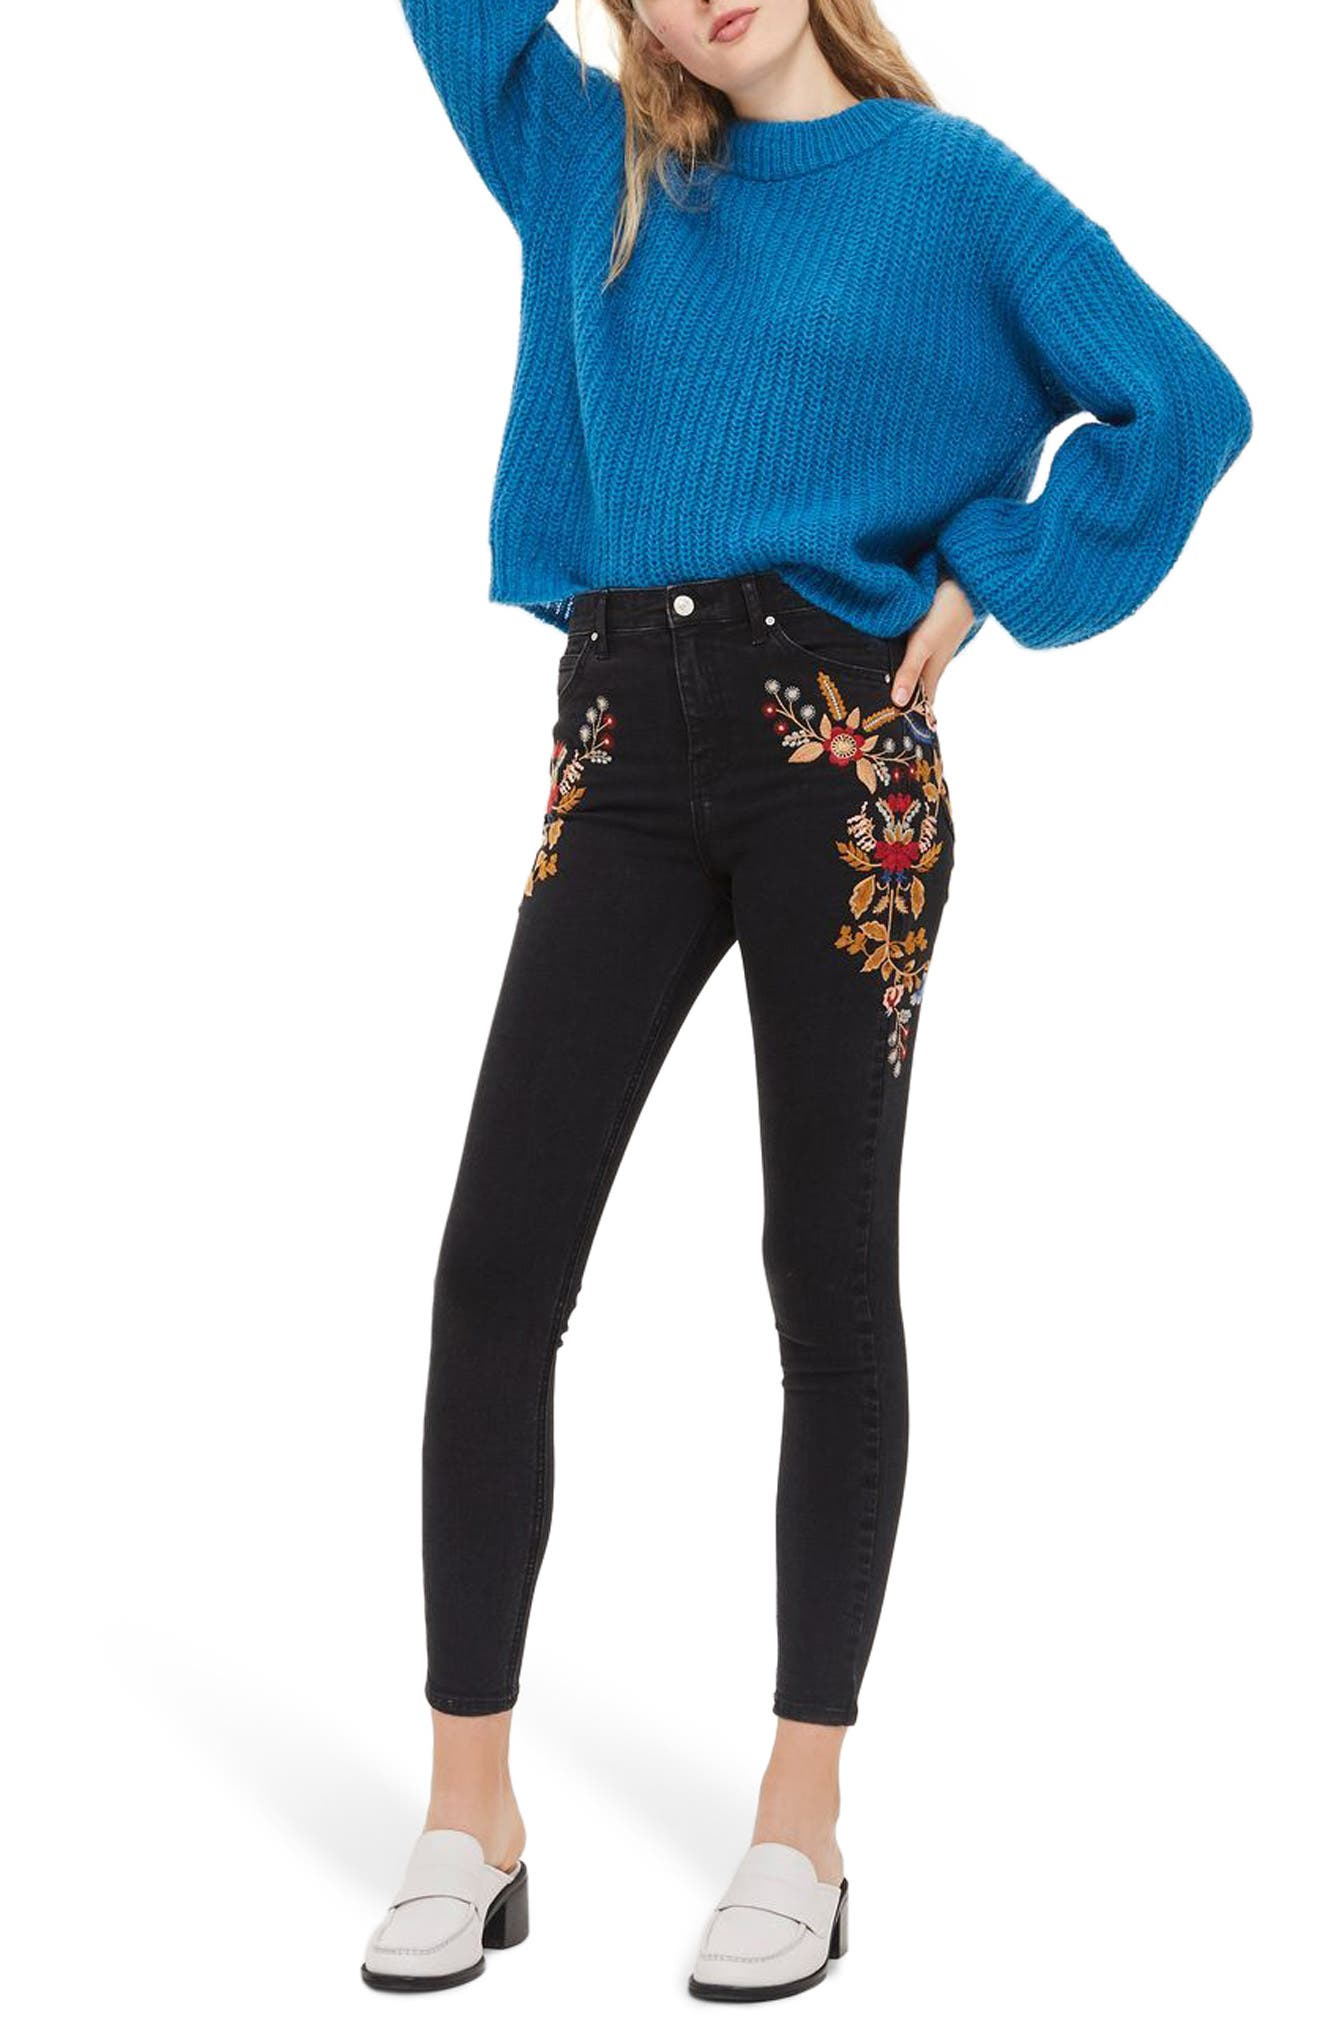 Jamie Embroidered High Waist Skinny Jeans,                         Main,                         color, Washed Black Multi